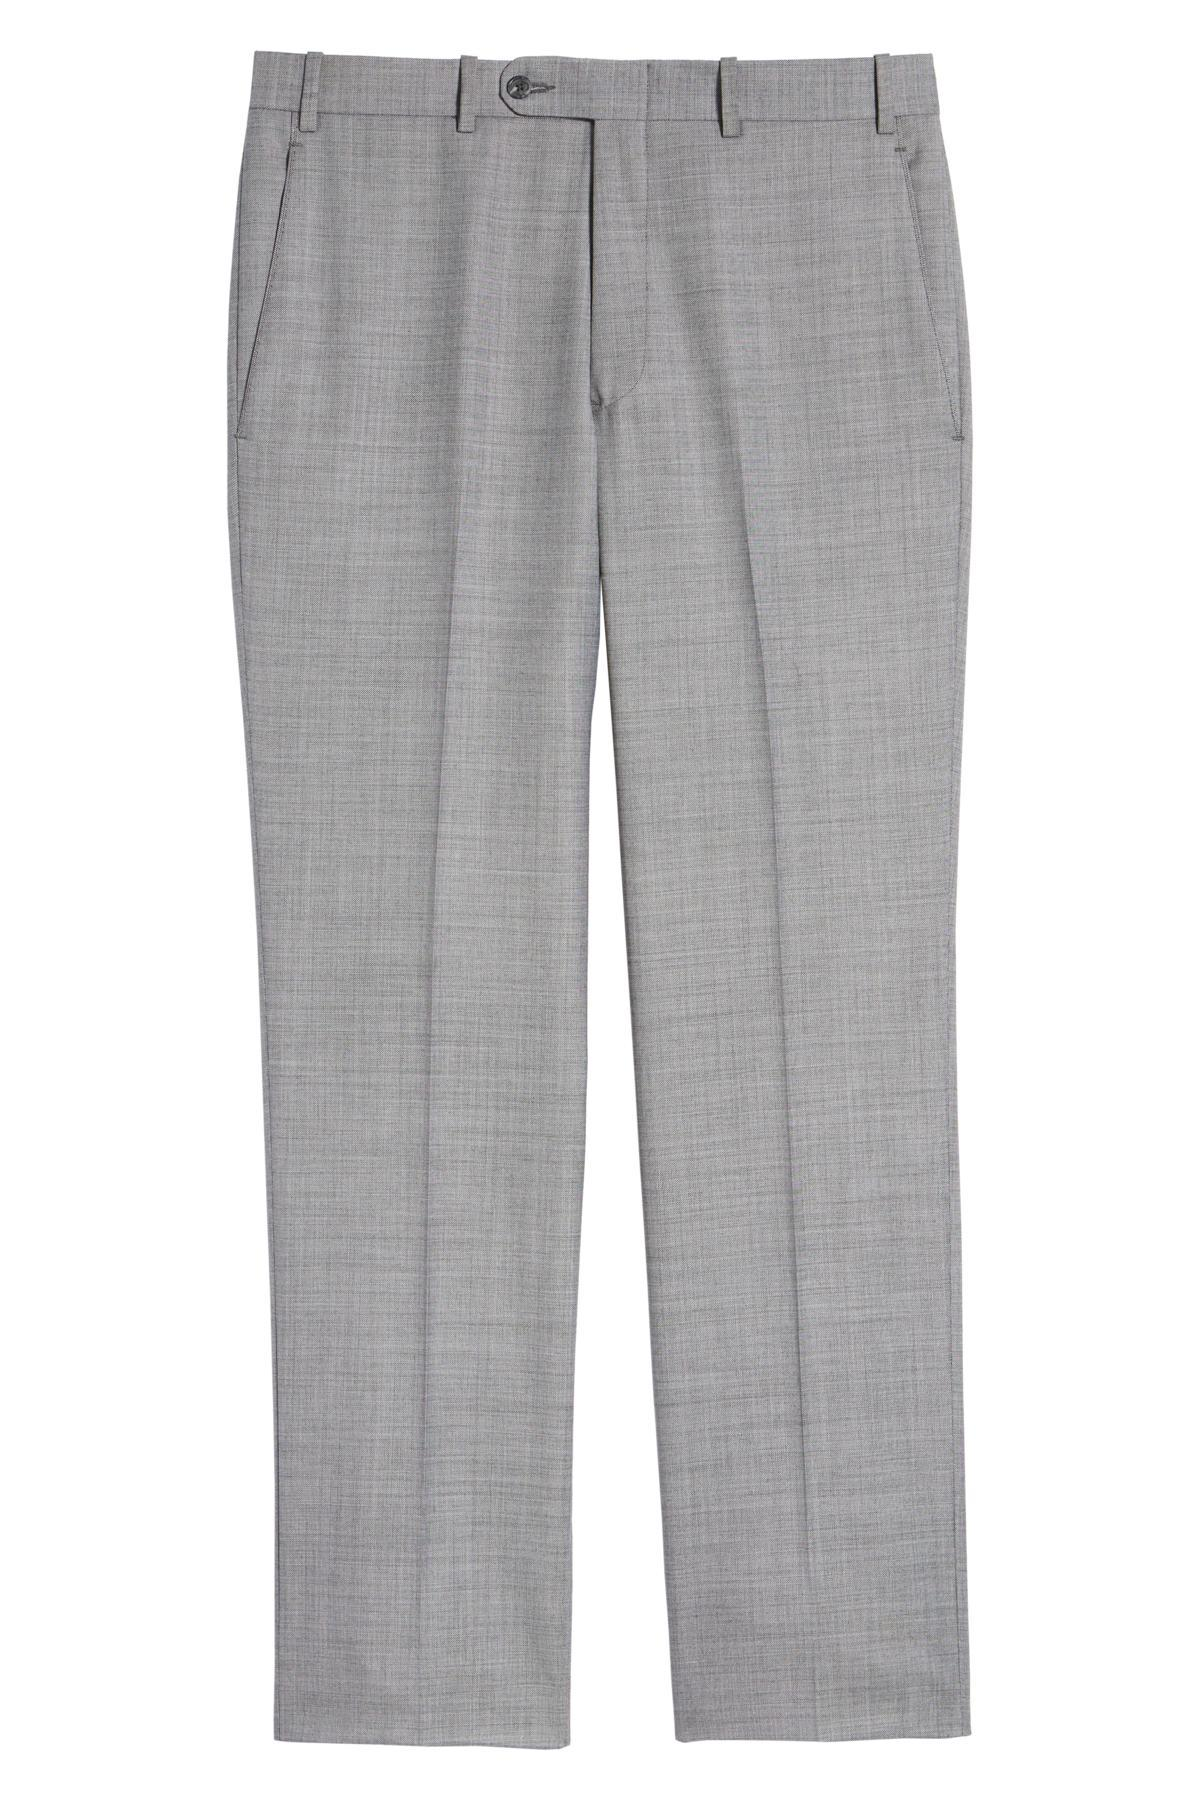 dc01db71a19d7 John W. Nordstrom - Gray (r) Torino Flat Front Solid Wool Trousers for.  View fullscreen